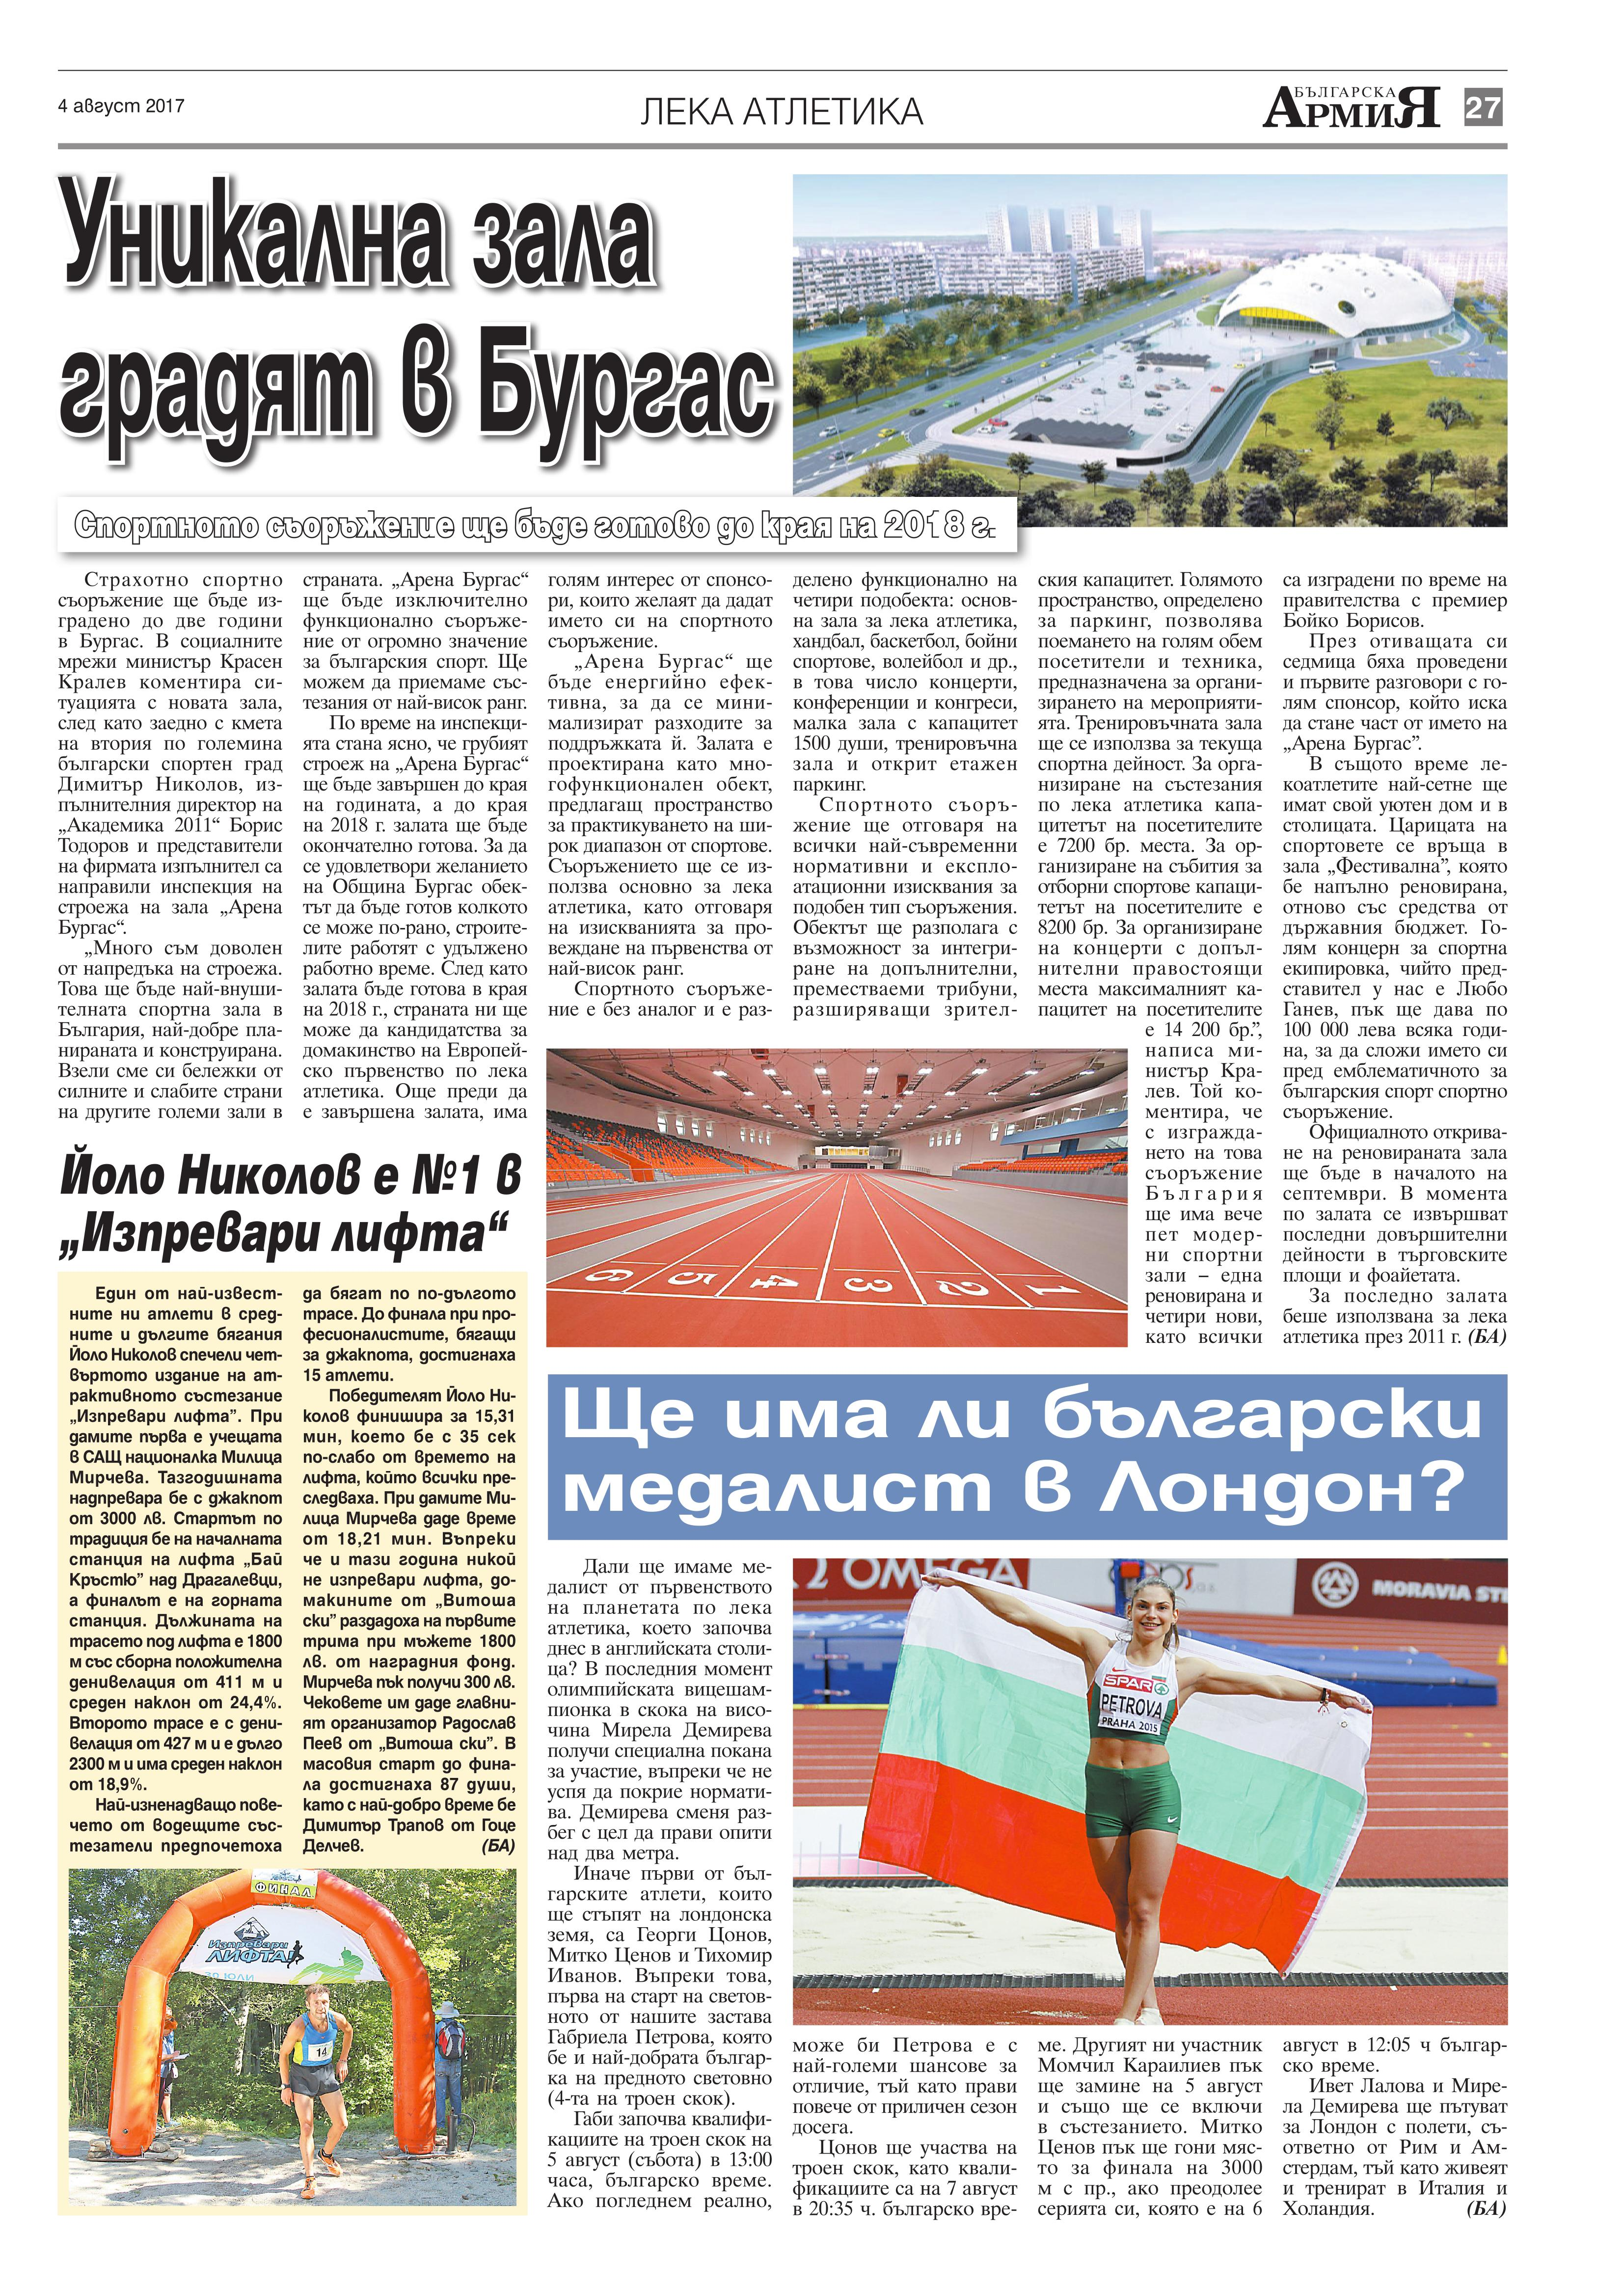 https://www.armymedia.bg/wp-content/uploads/2015/06/27.page1_-24.jpg